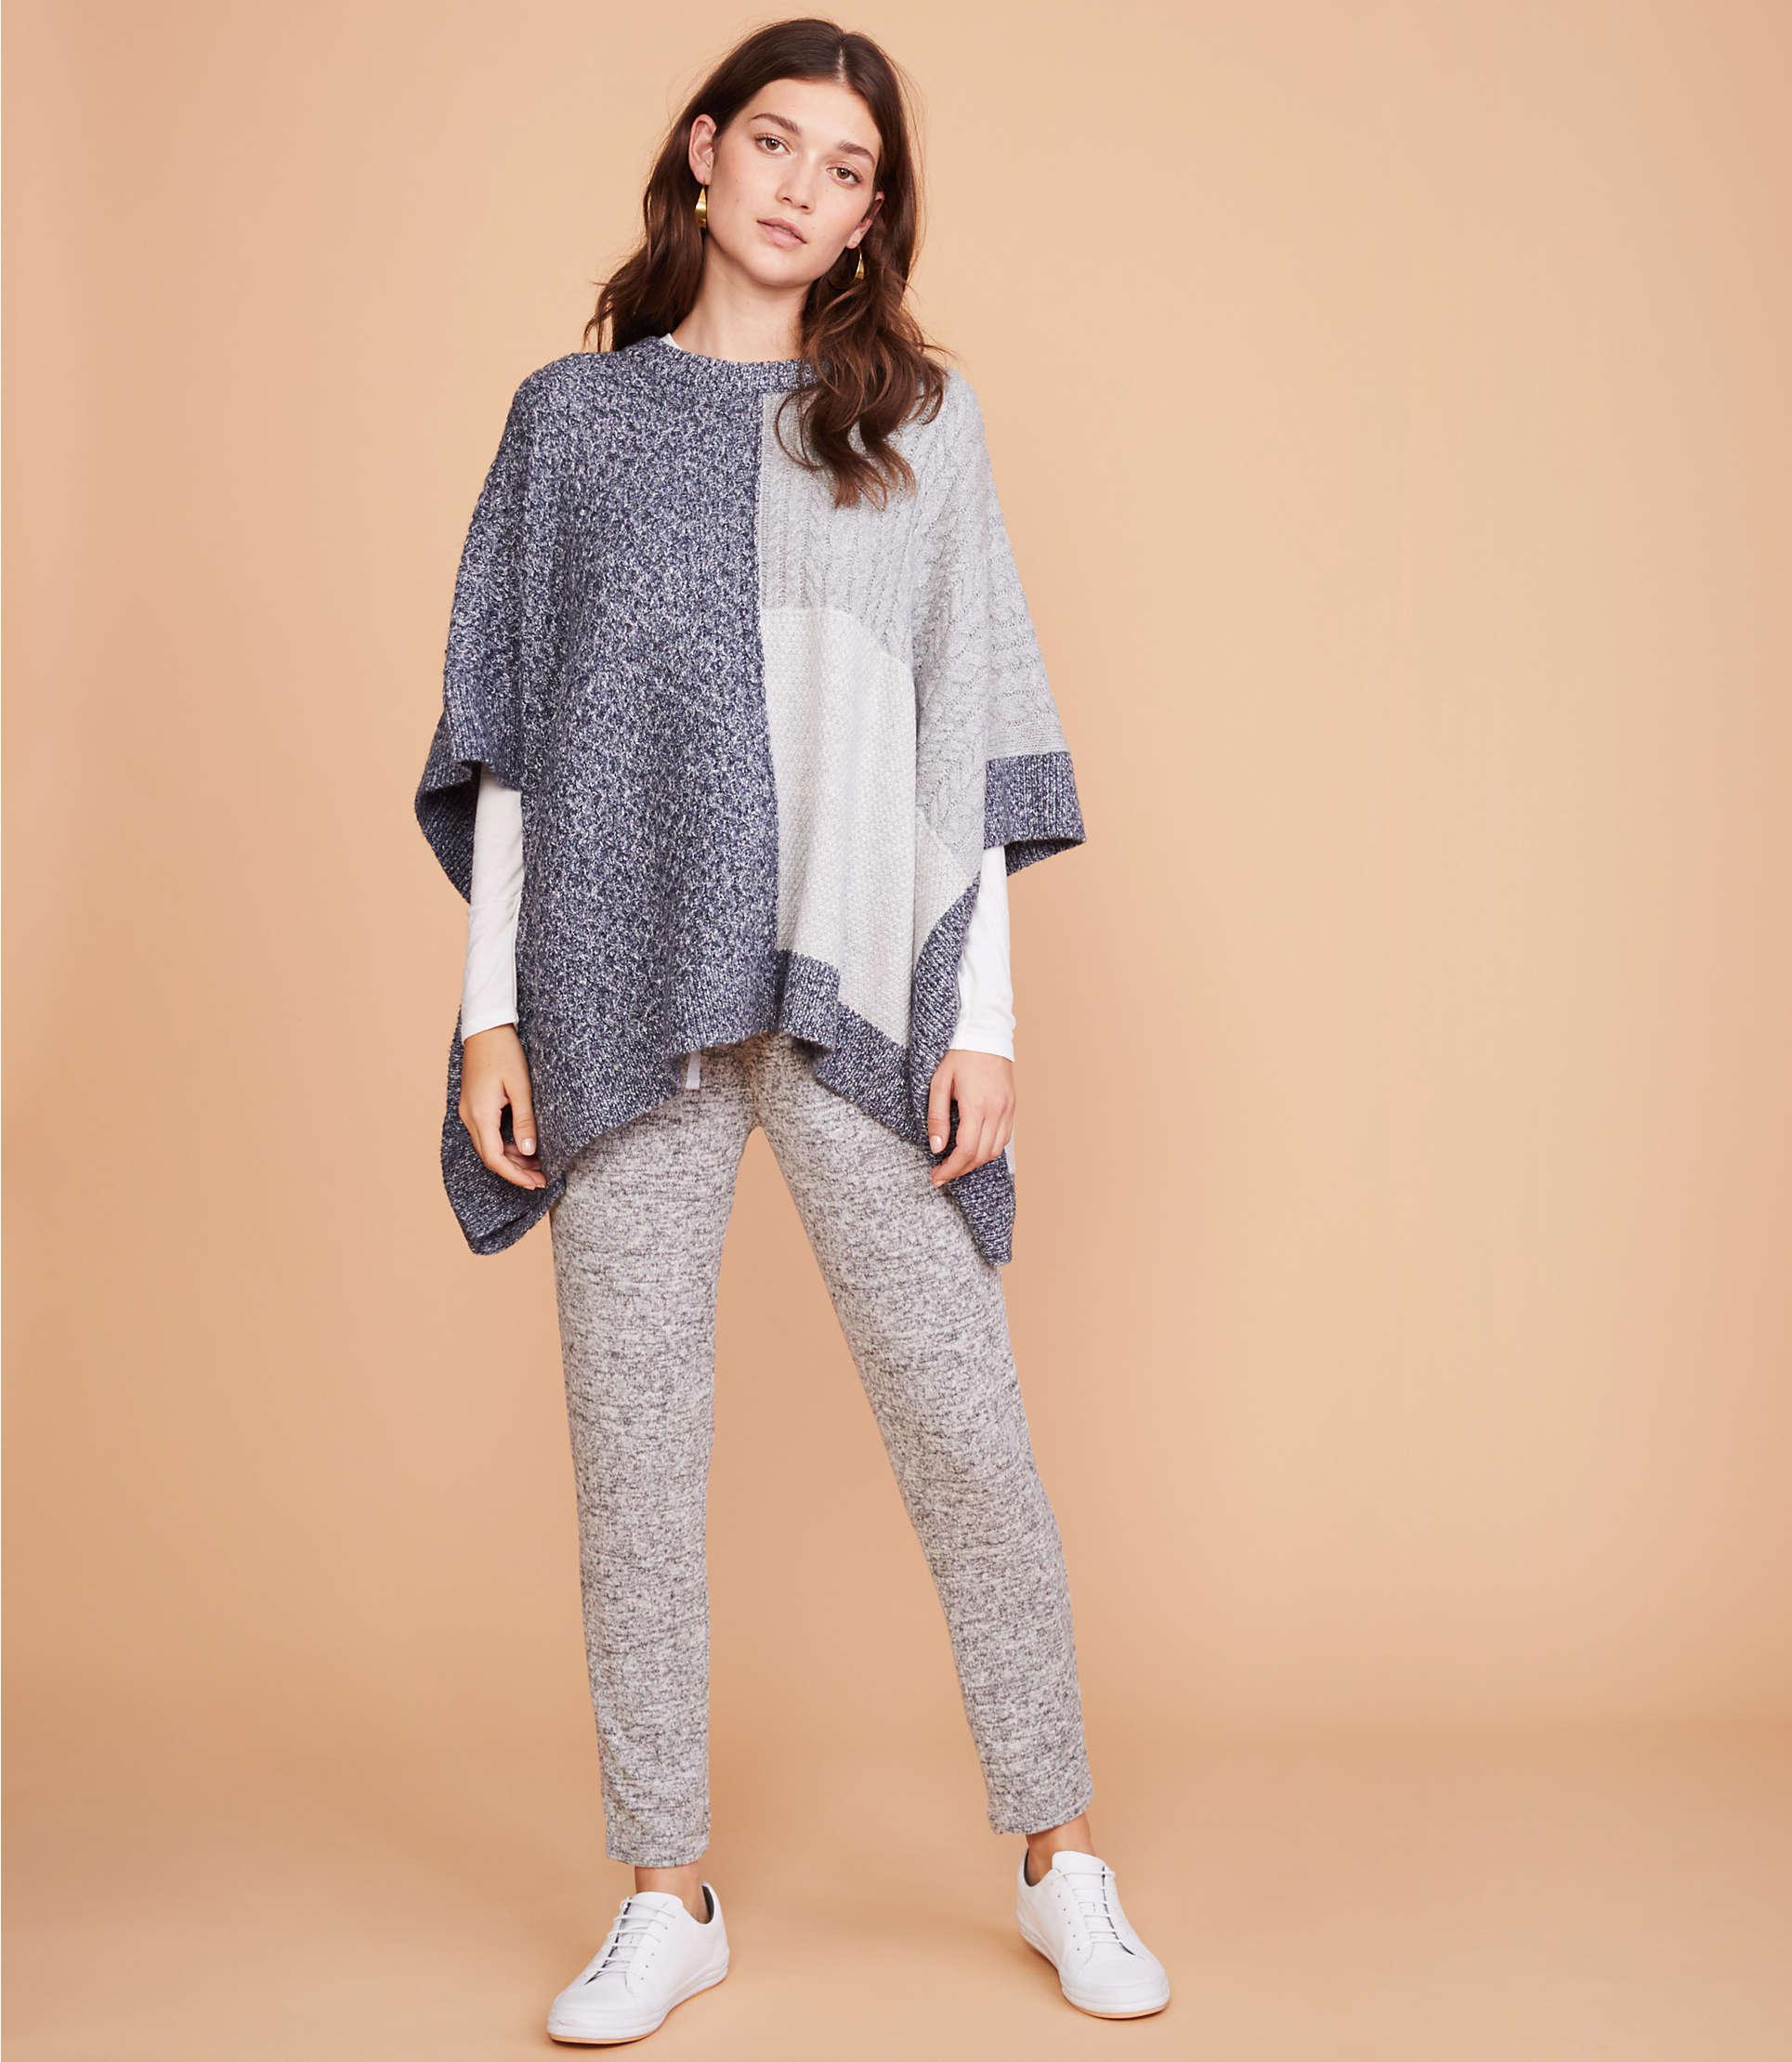 ed97cef7654 LOFT Lou   Grey Patchwork Poncho Sweater in Gray - Lyst